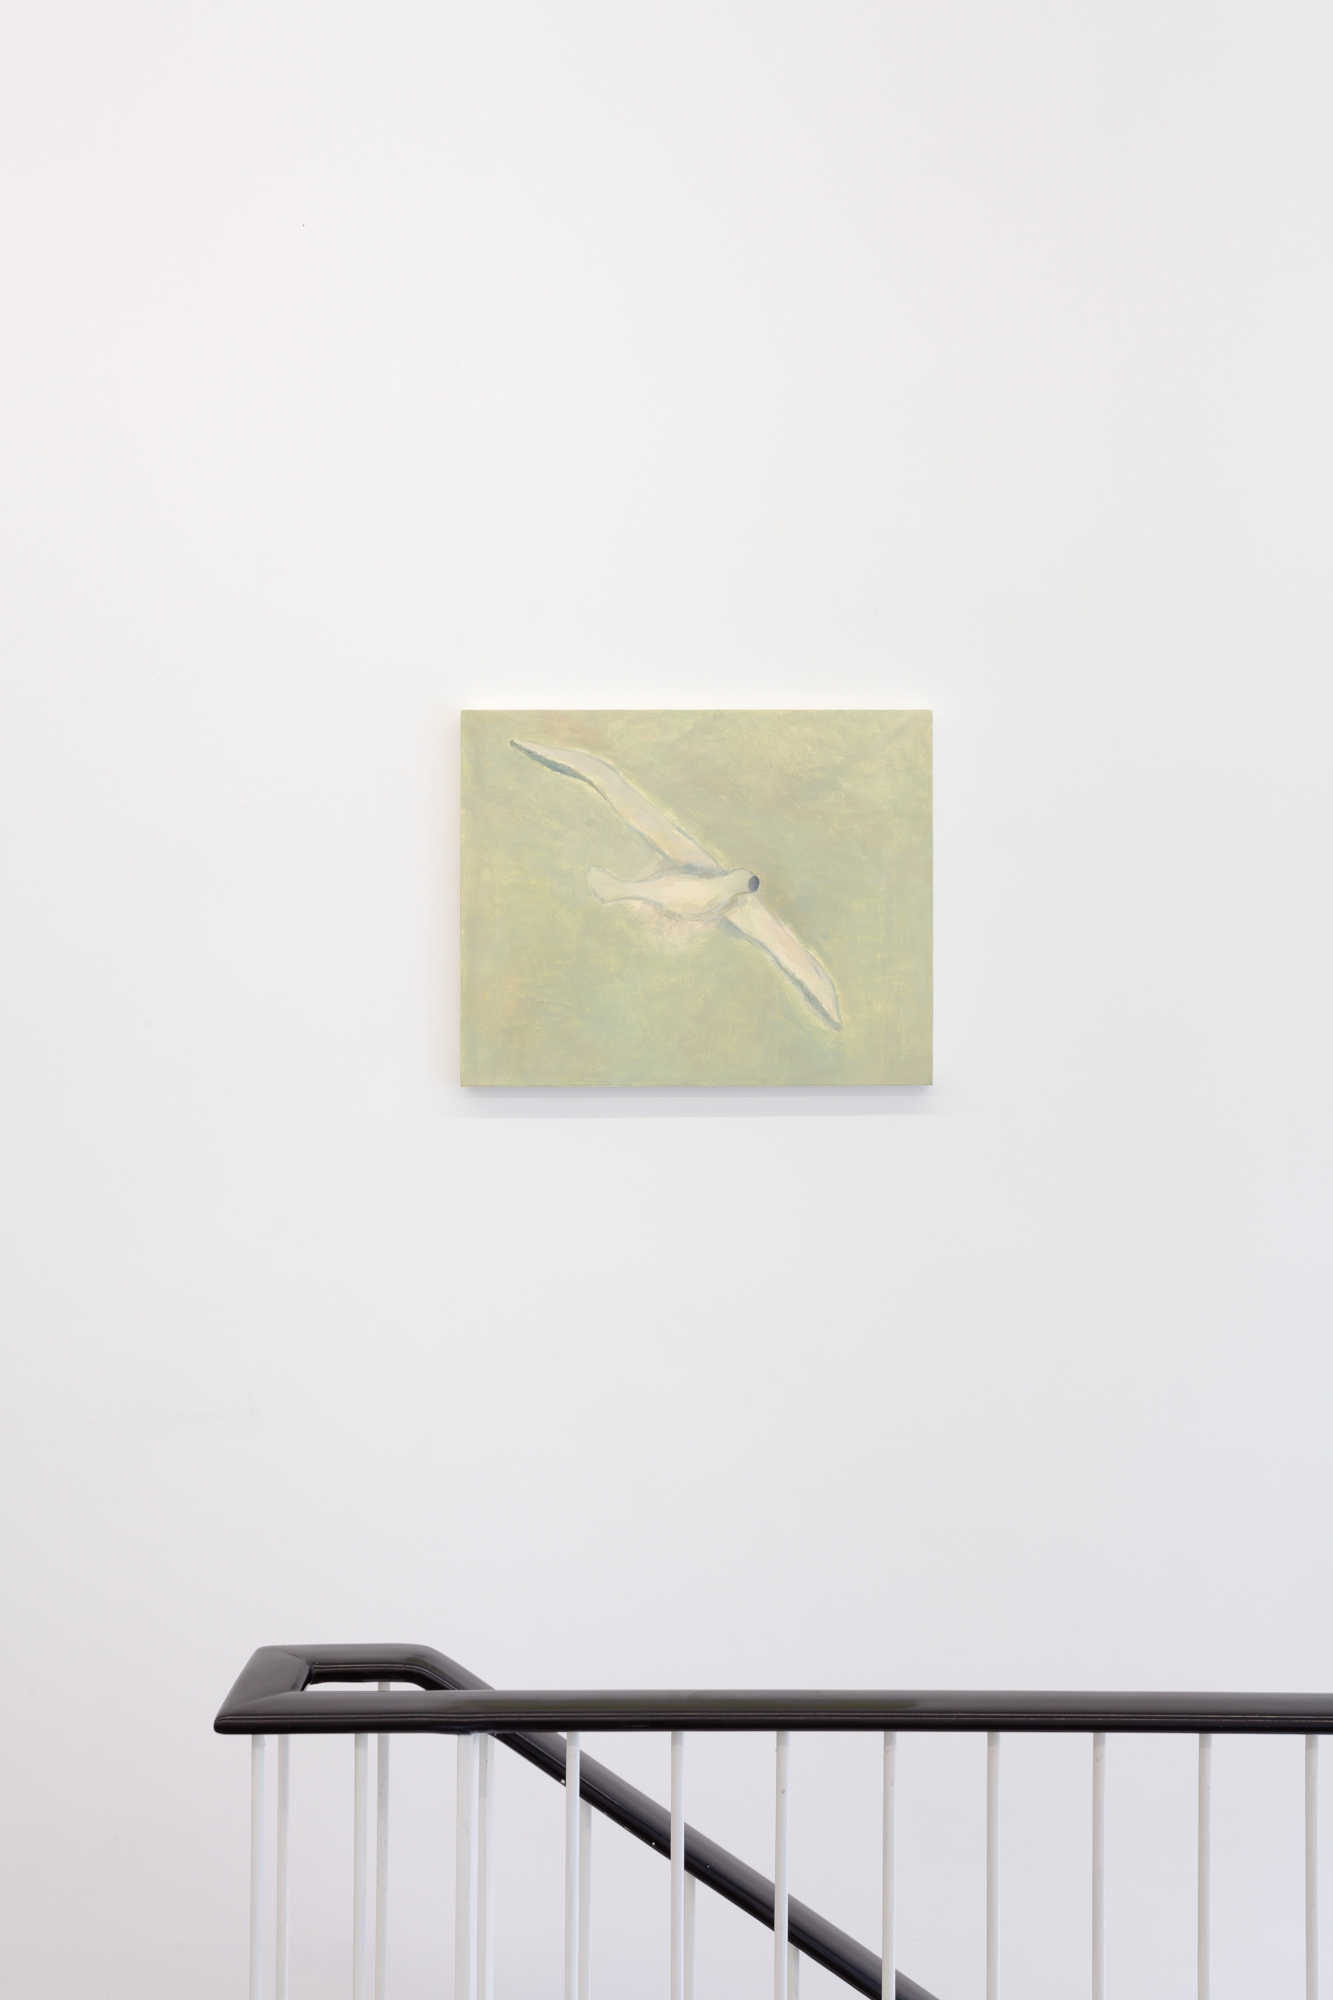 Guy Van Bossche, Untitled (Bird), The Collectors Mind, 2020 Oil on canvas 47,3 x 59,6 cm, Photo by Pieter Huybrechts.